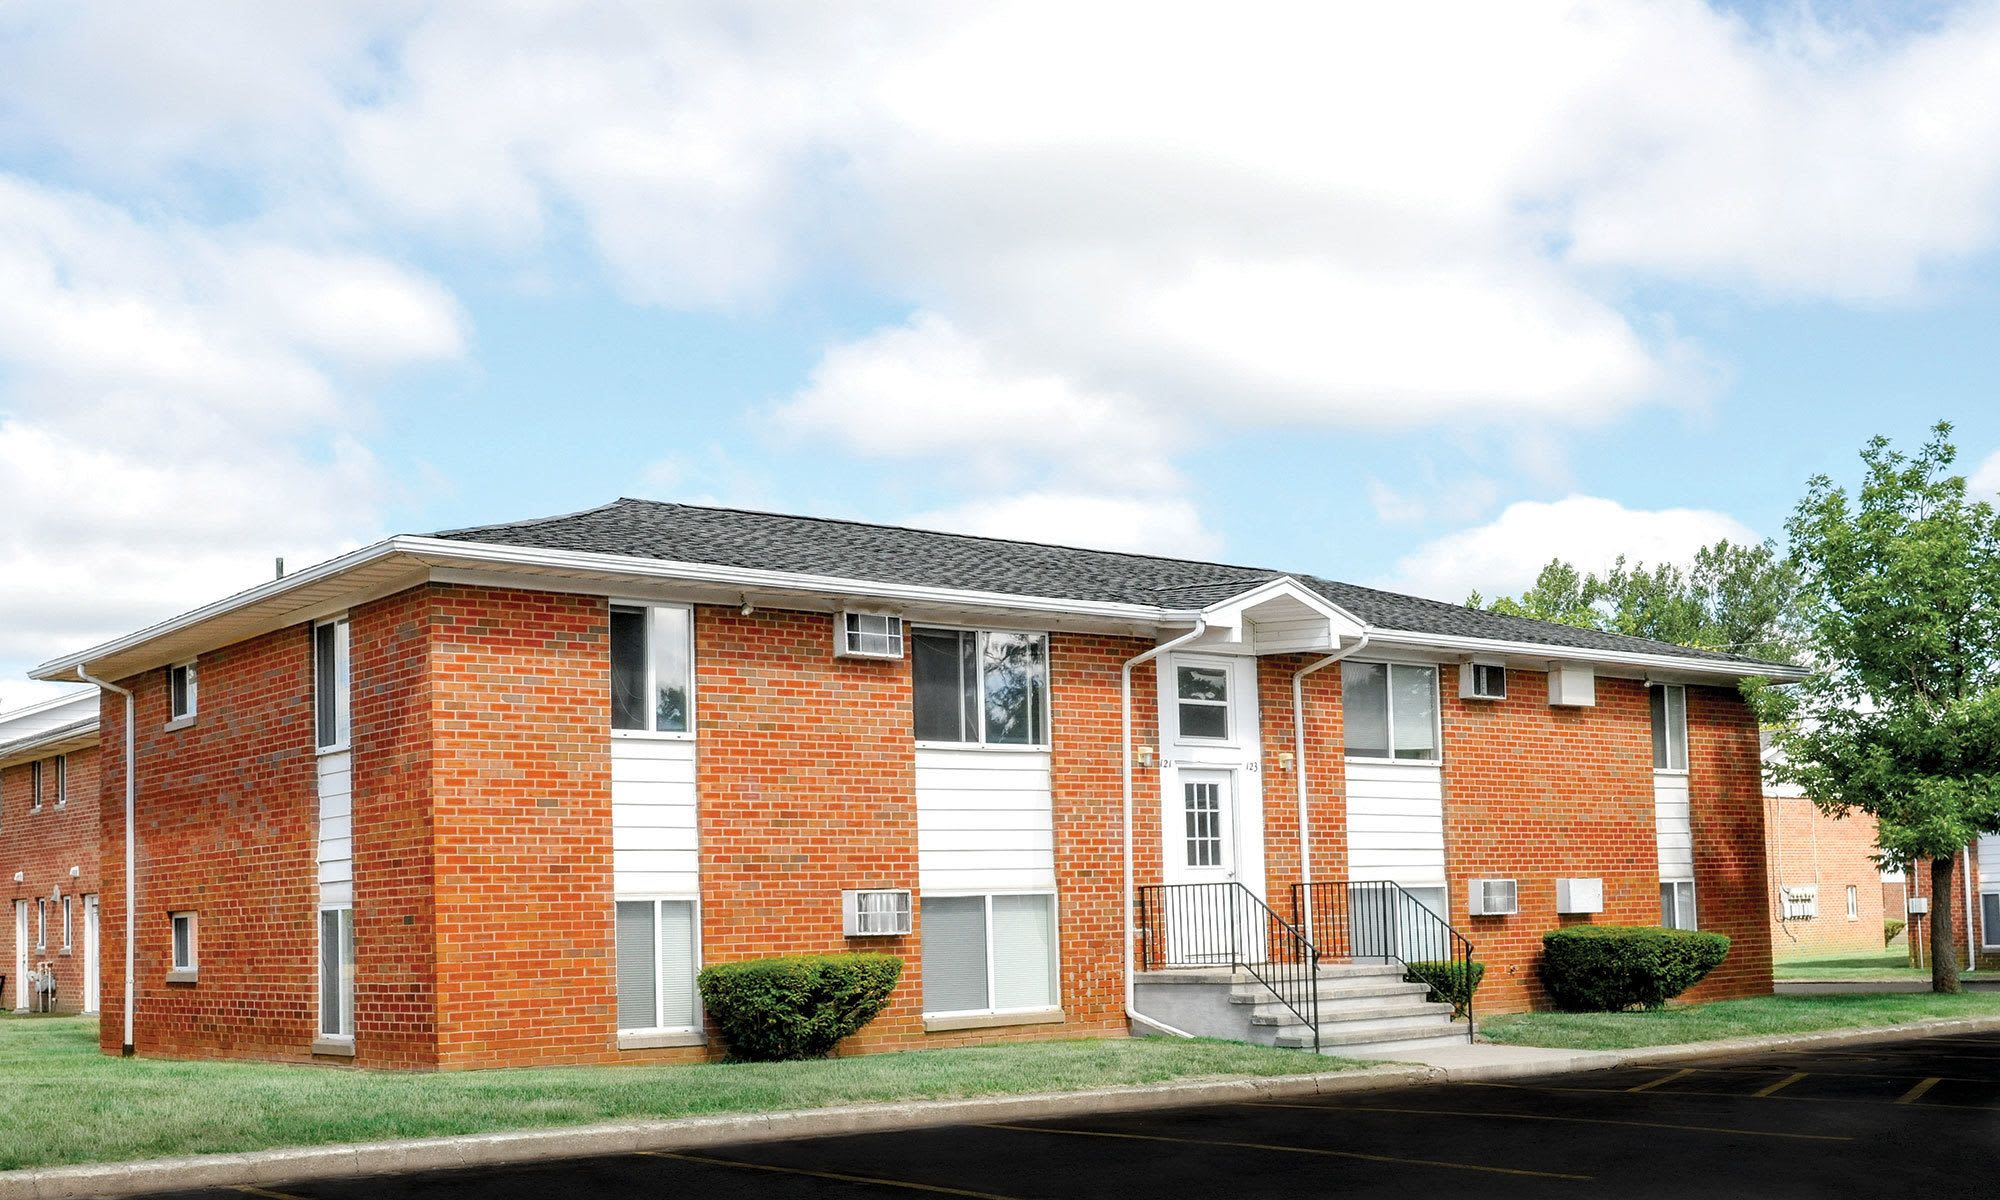 Apartments in Brockport, NY